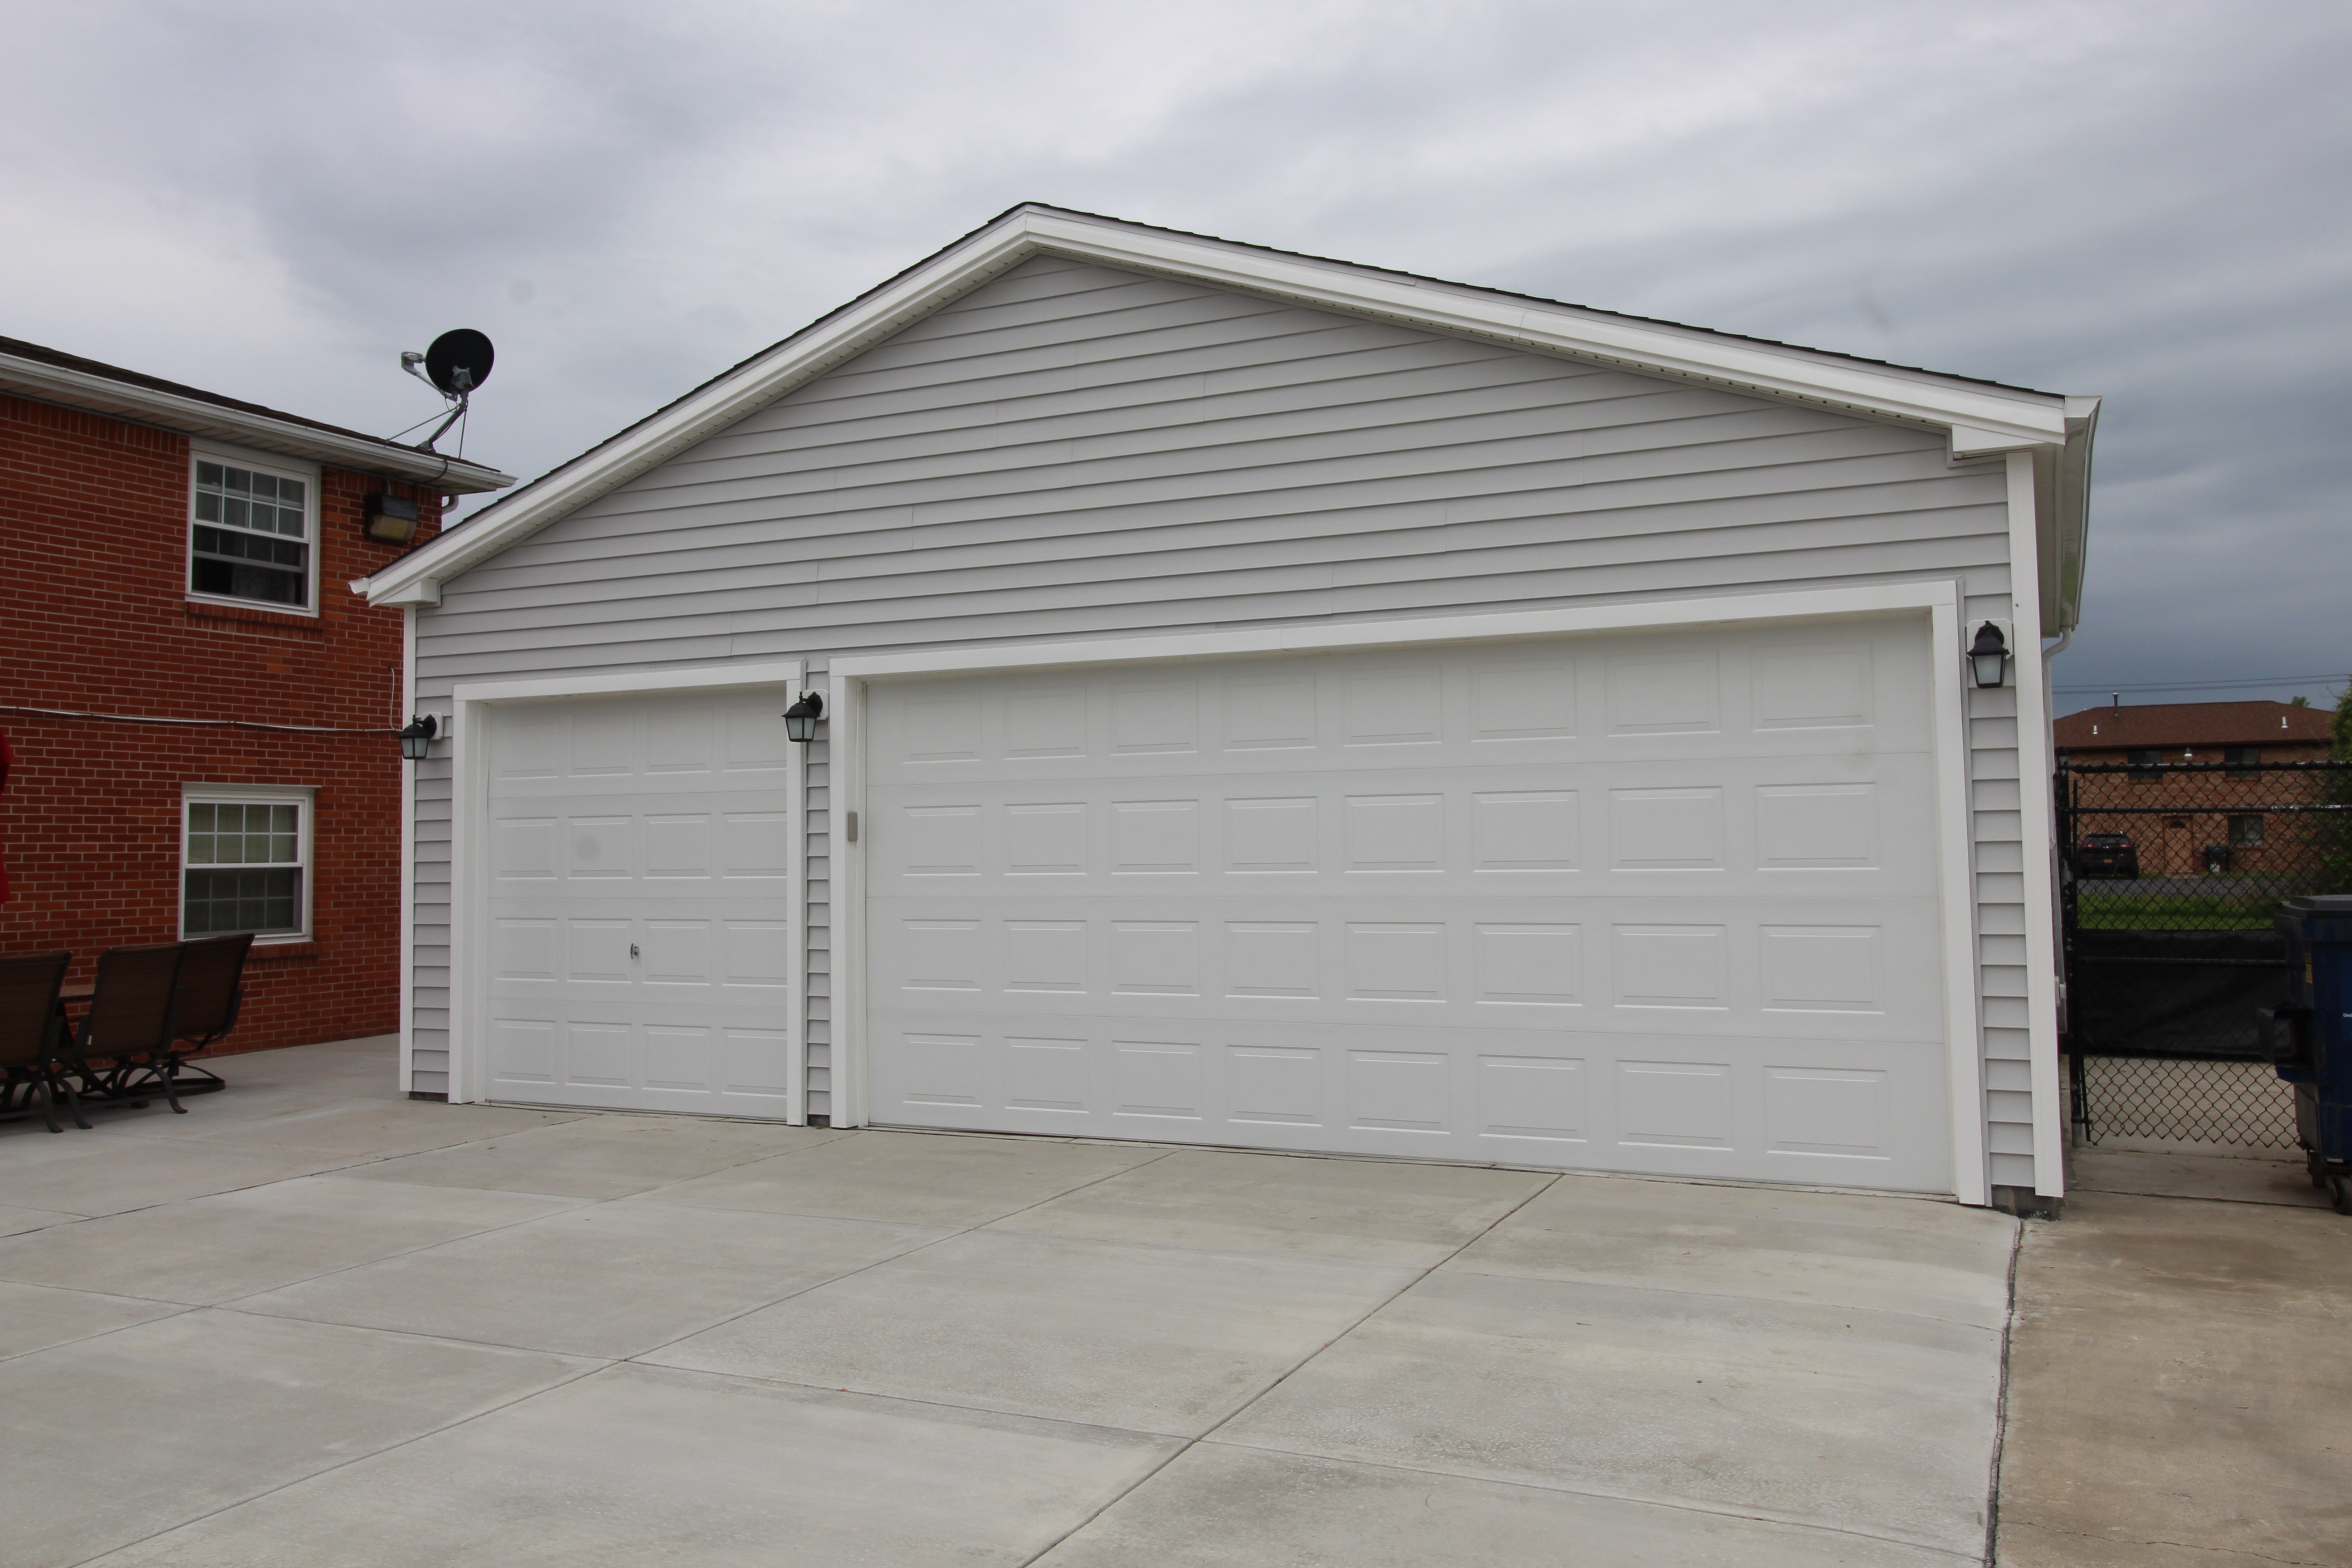 Garage Repair and Construction in Buffalo | Ivy Lea Construction